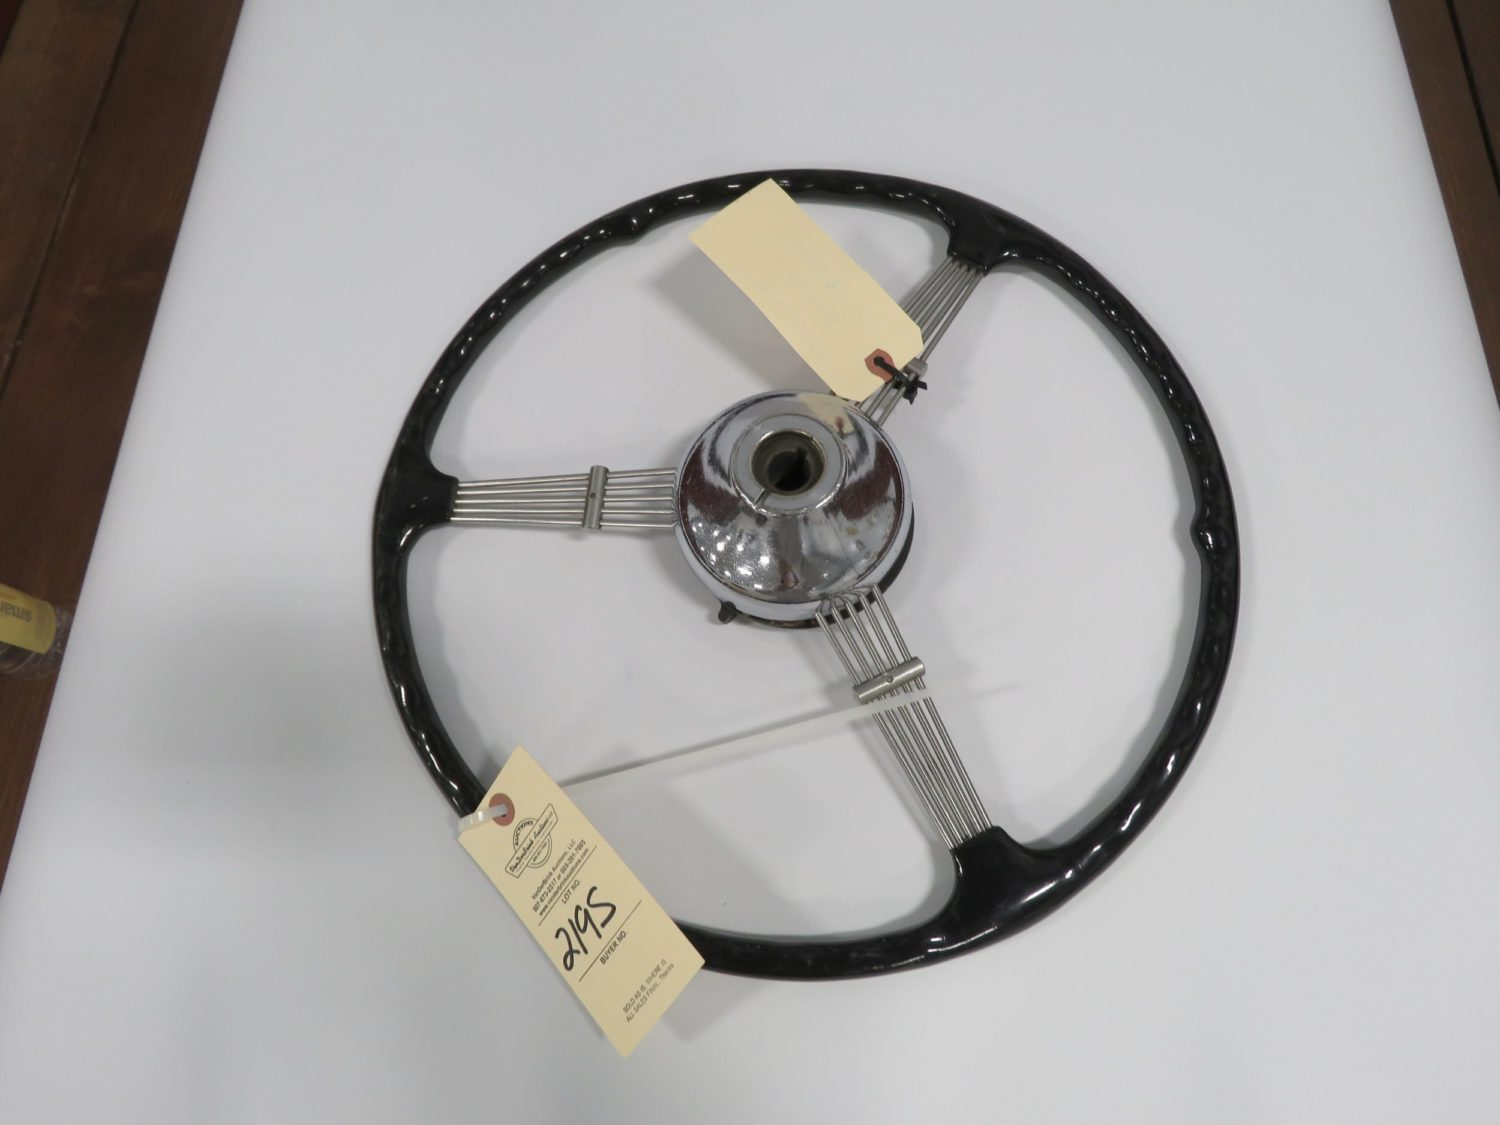 1936 Ford Banjo Steering Wheel/ Horn Button - Image 2